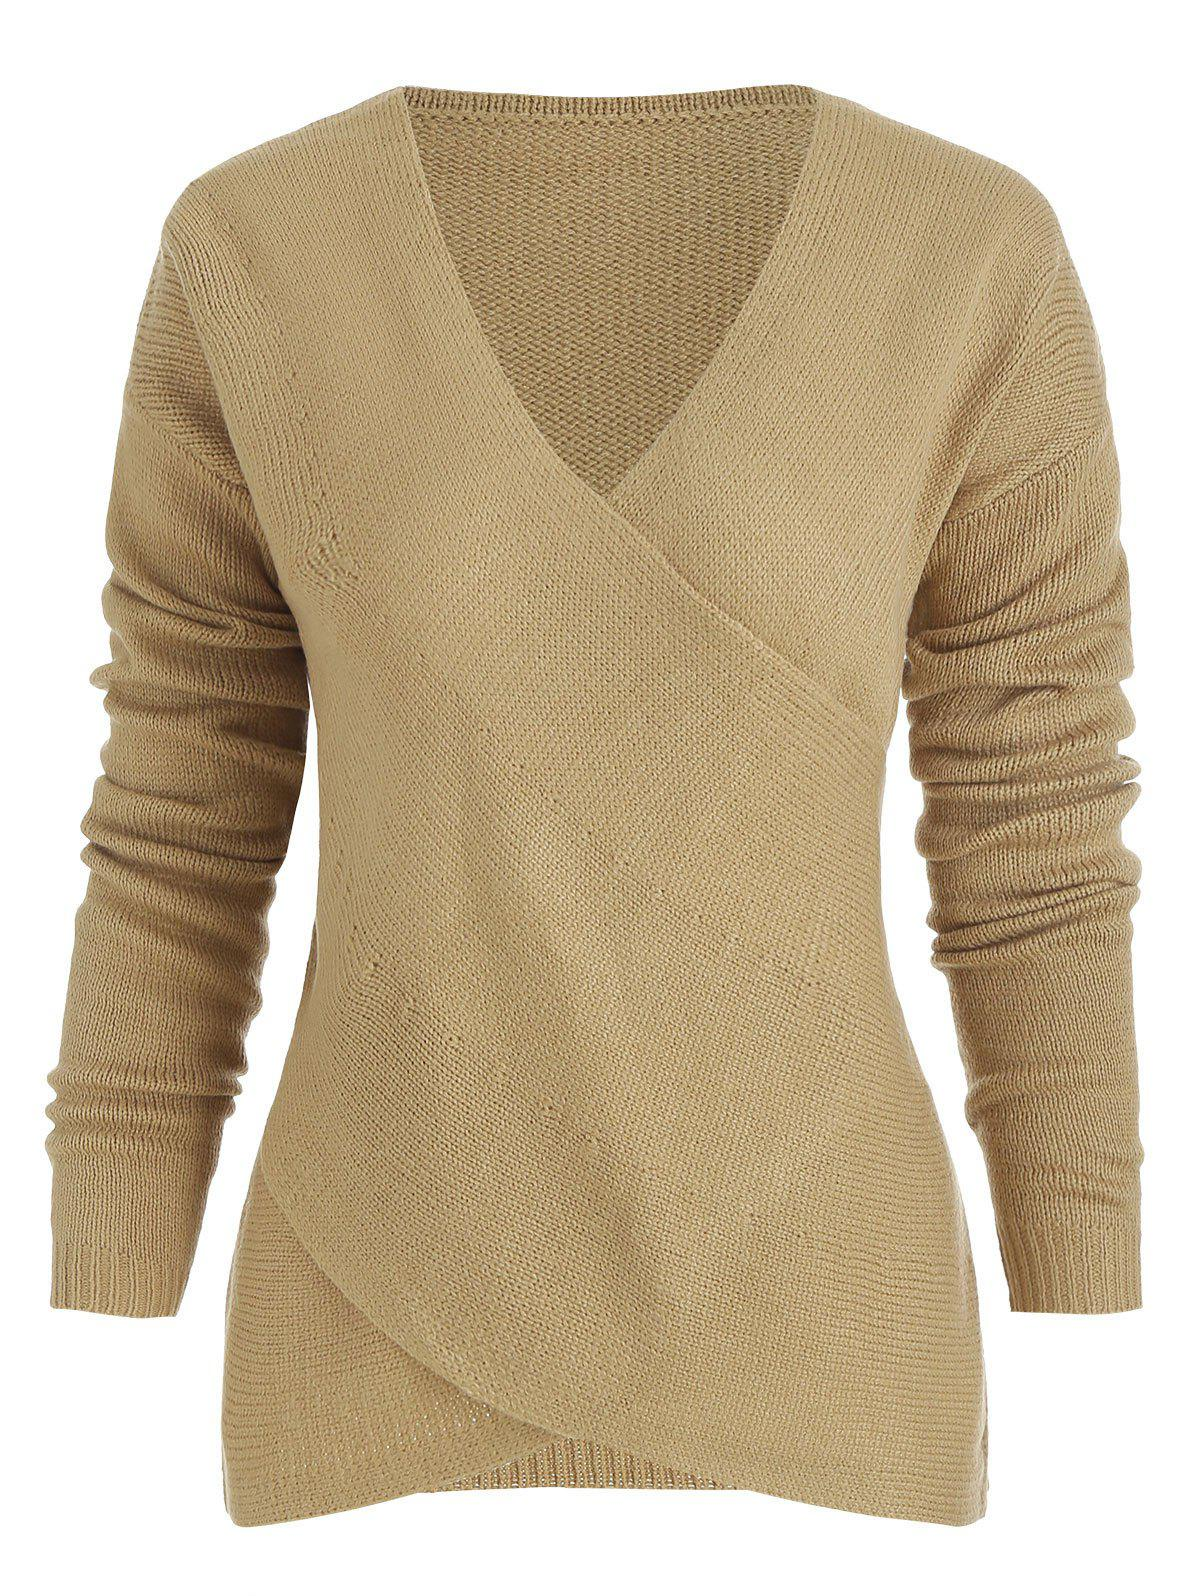 Latest Criss Cross Wrap V Neck Knitted Sweater